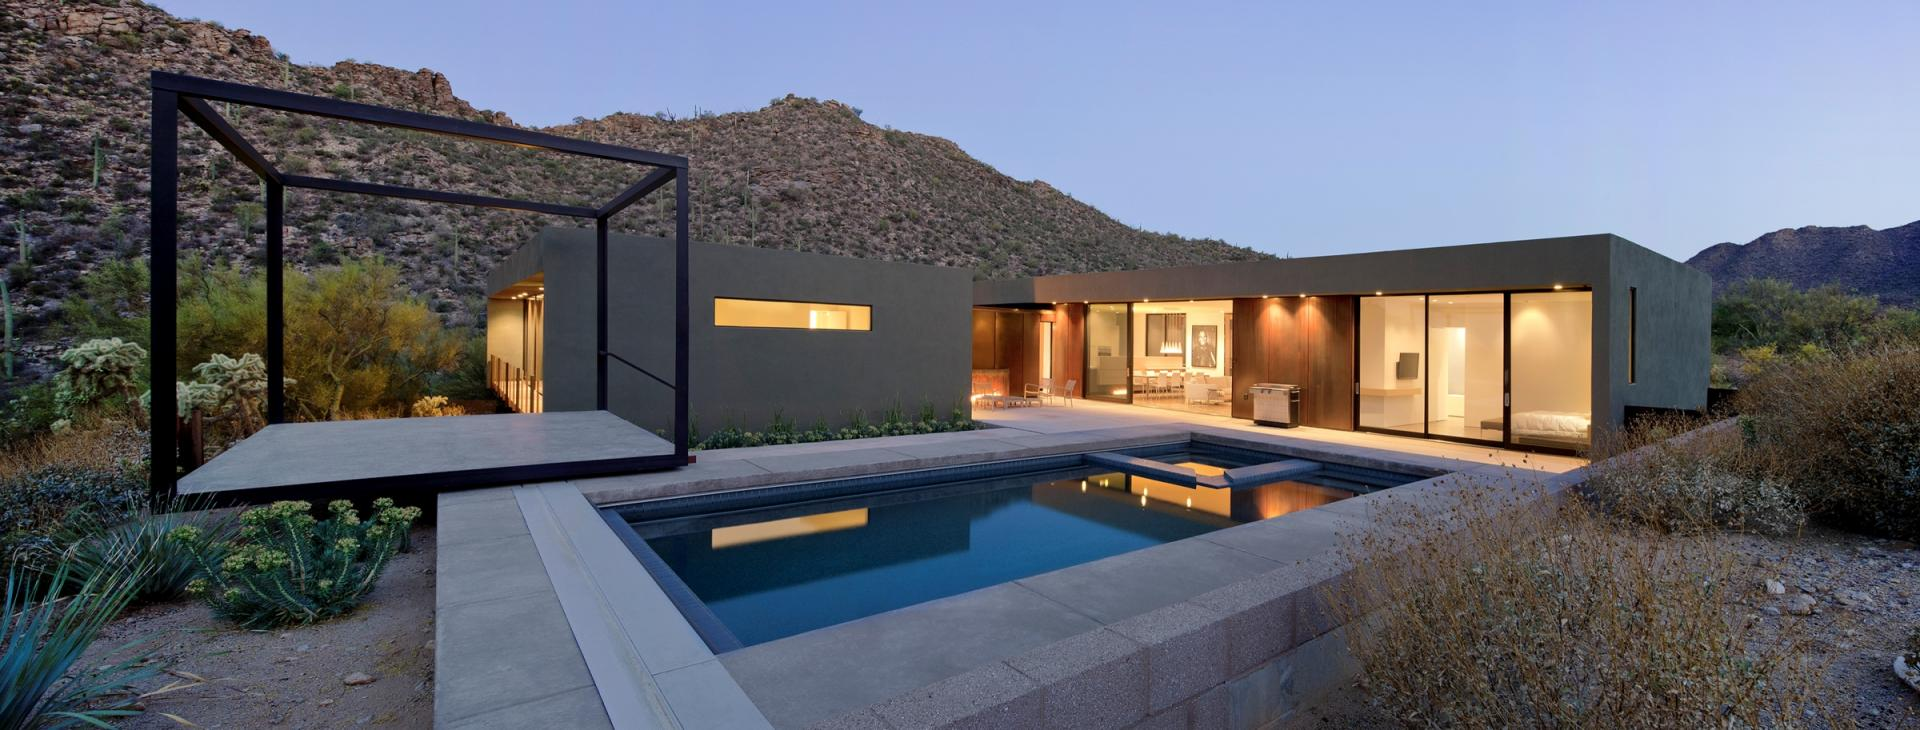 Desert House With Awesome Viewing (Image 2 of 10)